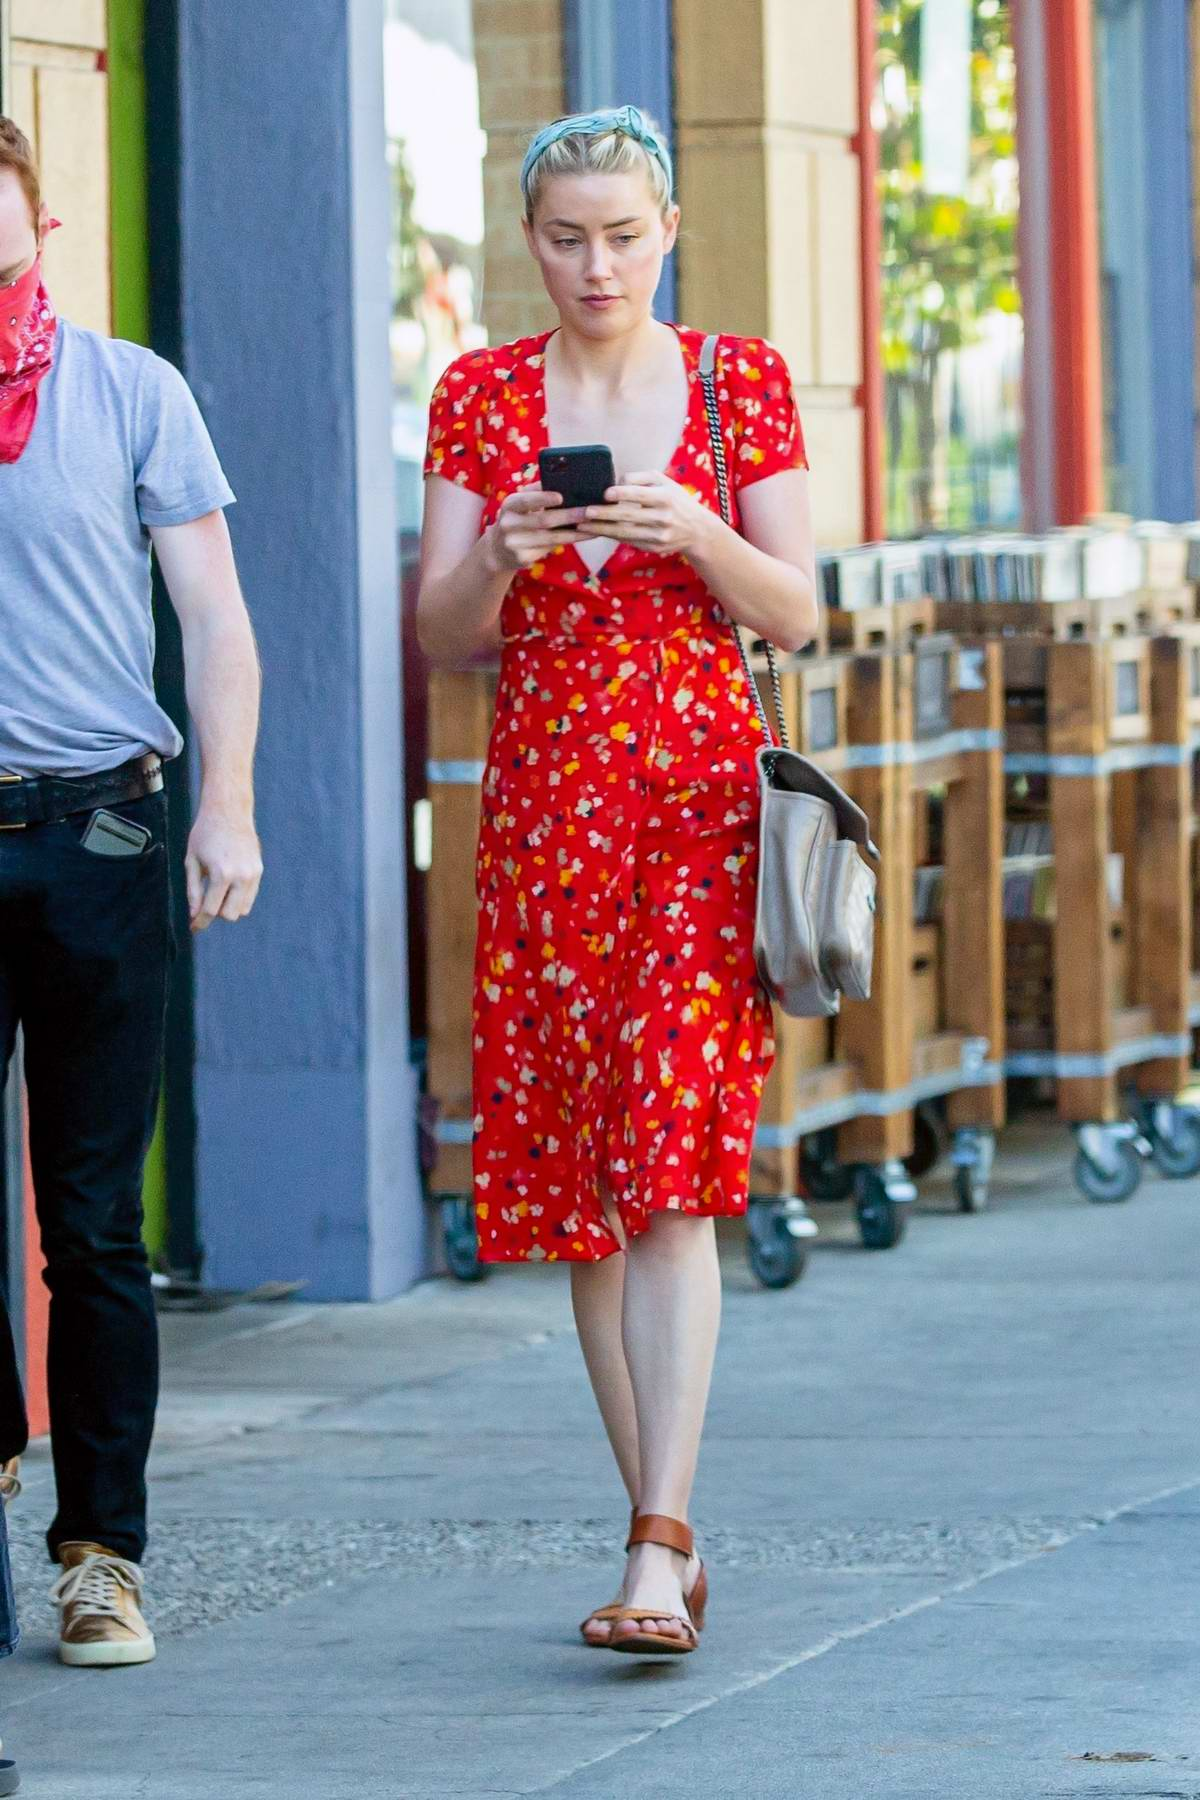 Amber Heard looks lovely in a bright red floral print dress while out shopping at the farmers market in Los Angeles